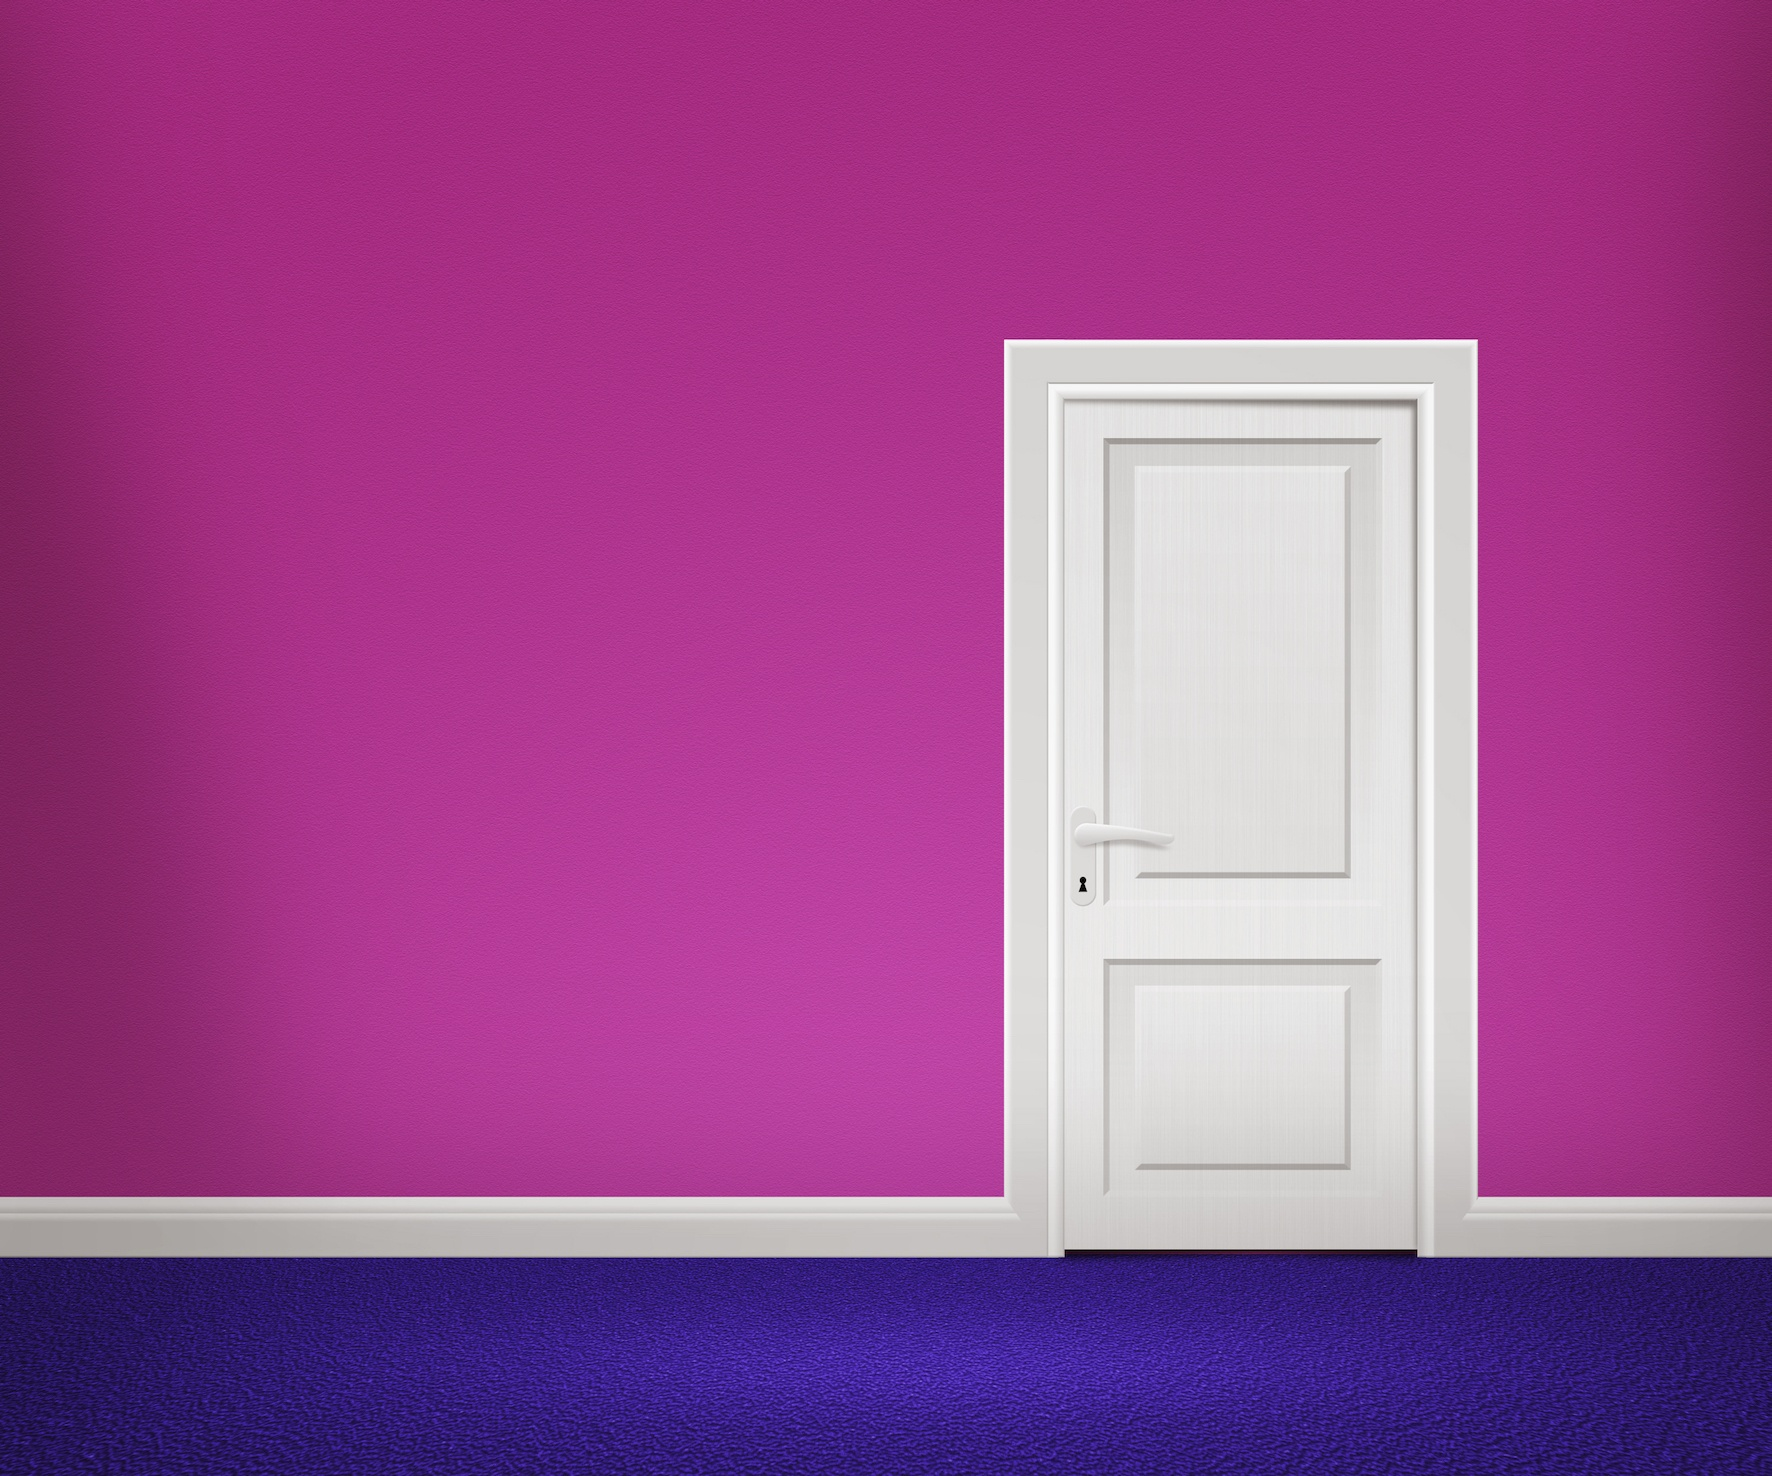 Door in Violet Room